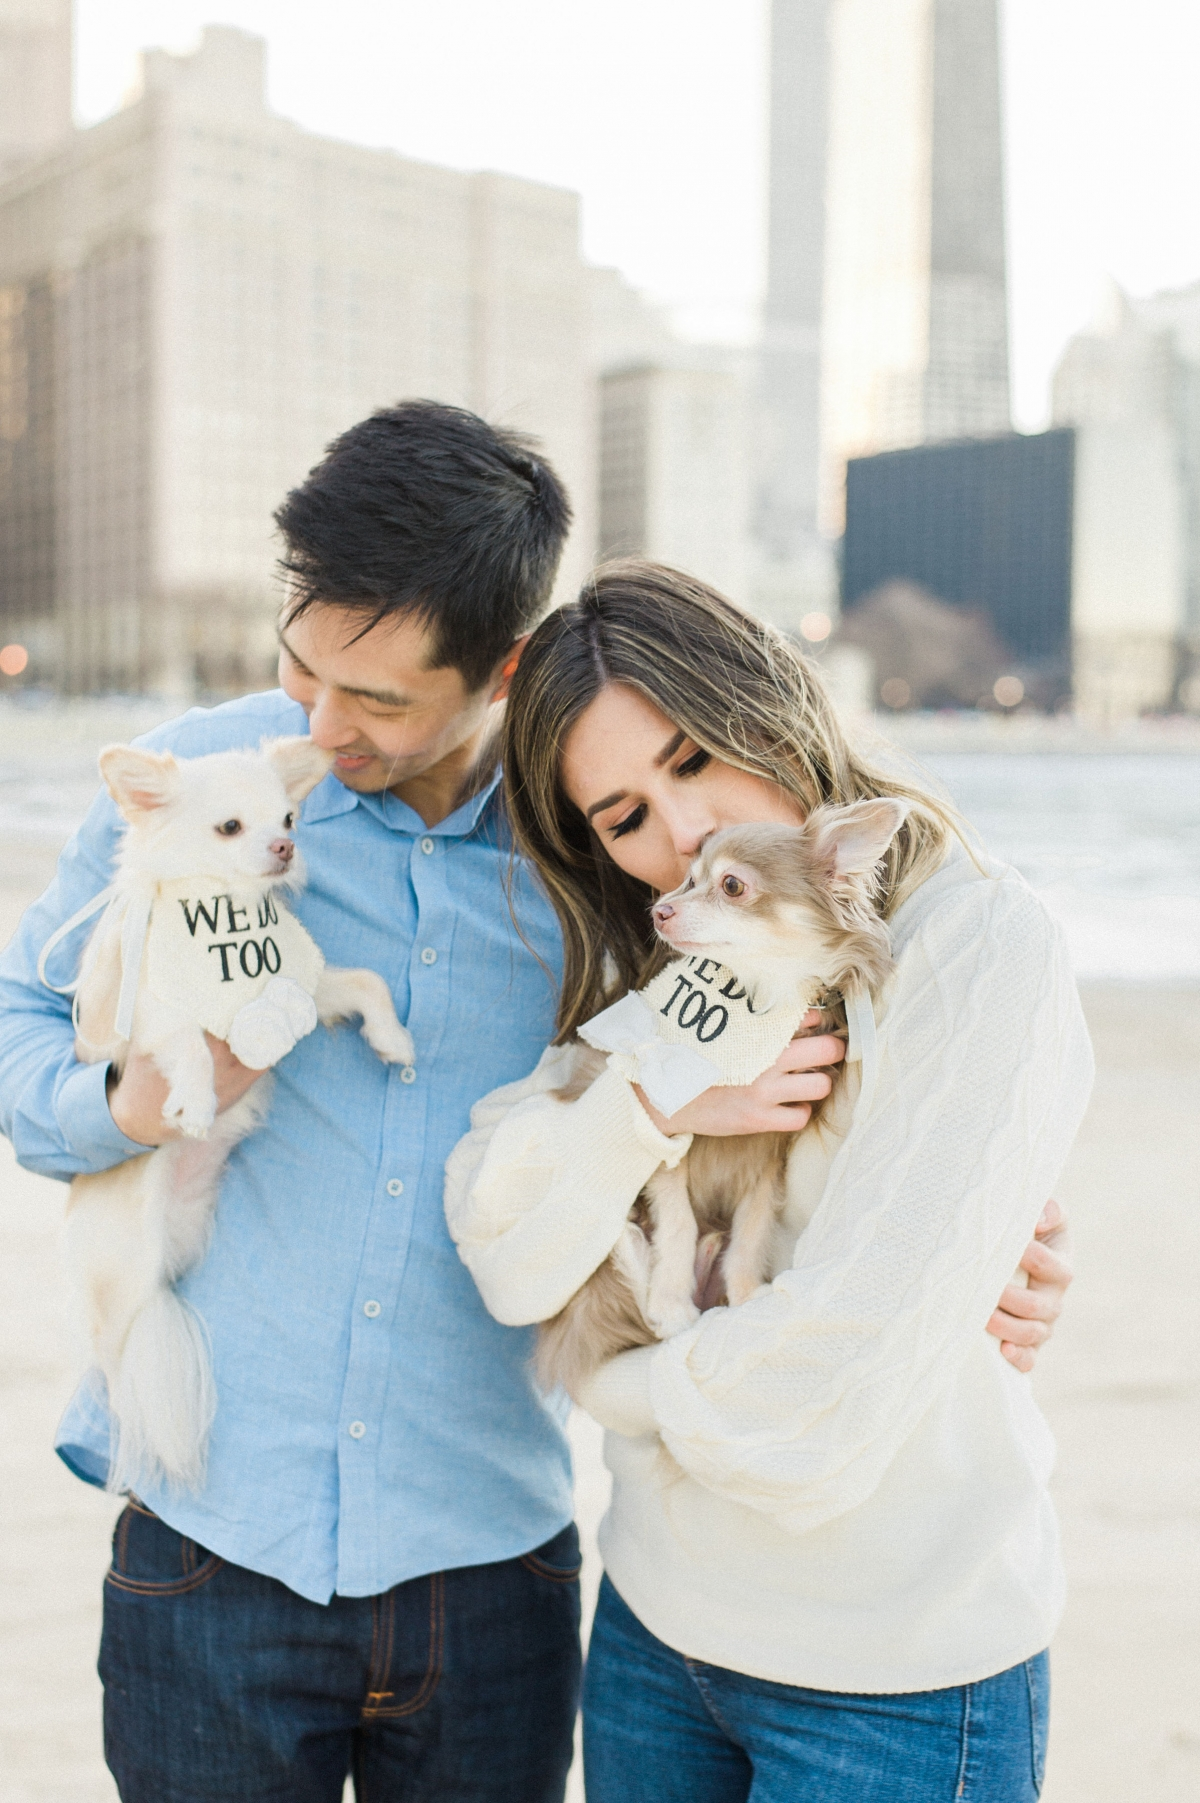 Olive Park Engagement Session with Puppies Nicole Jansma 5